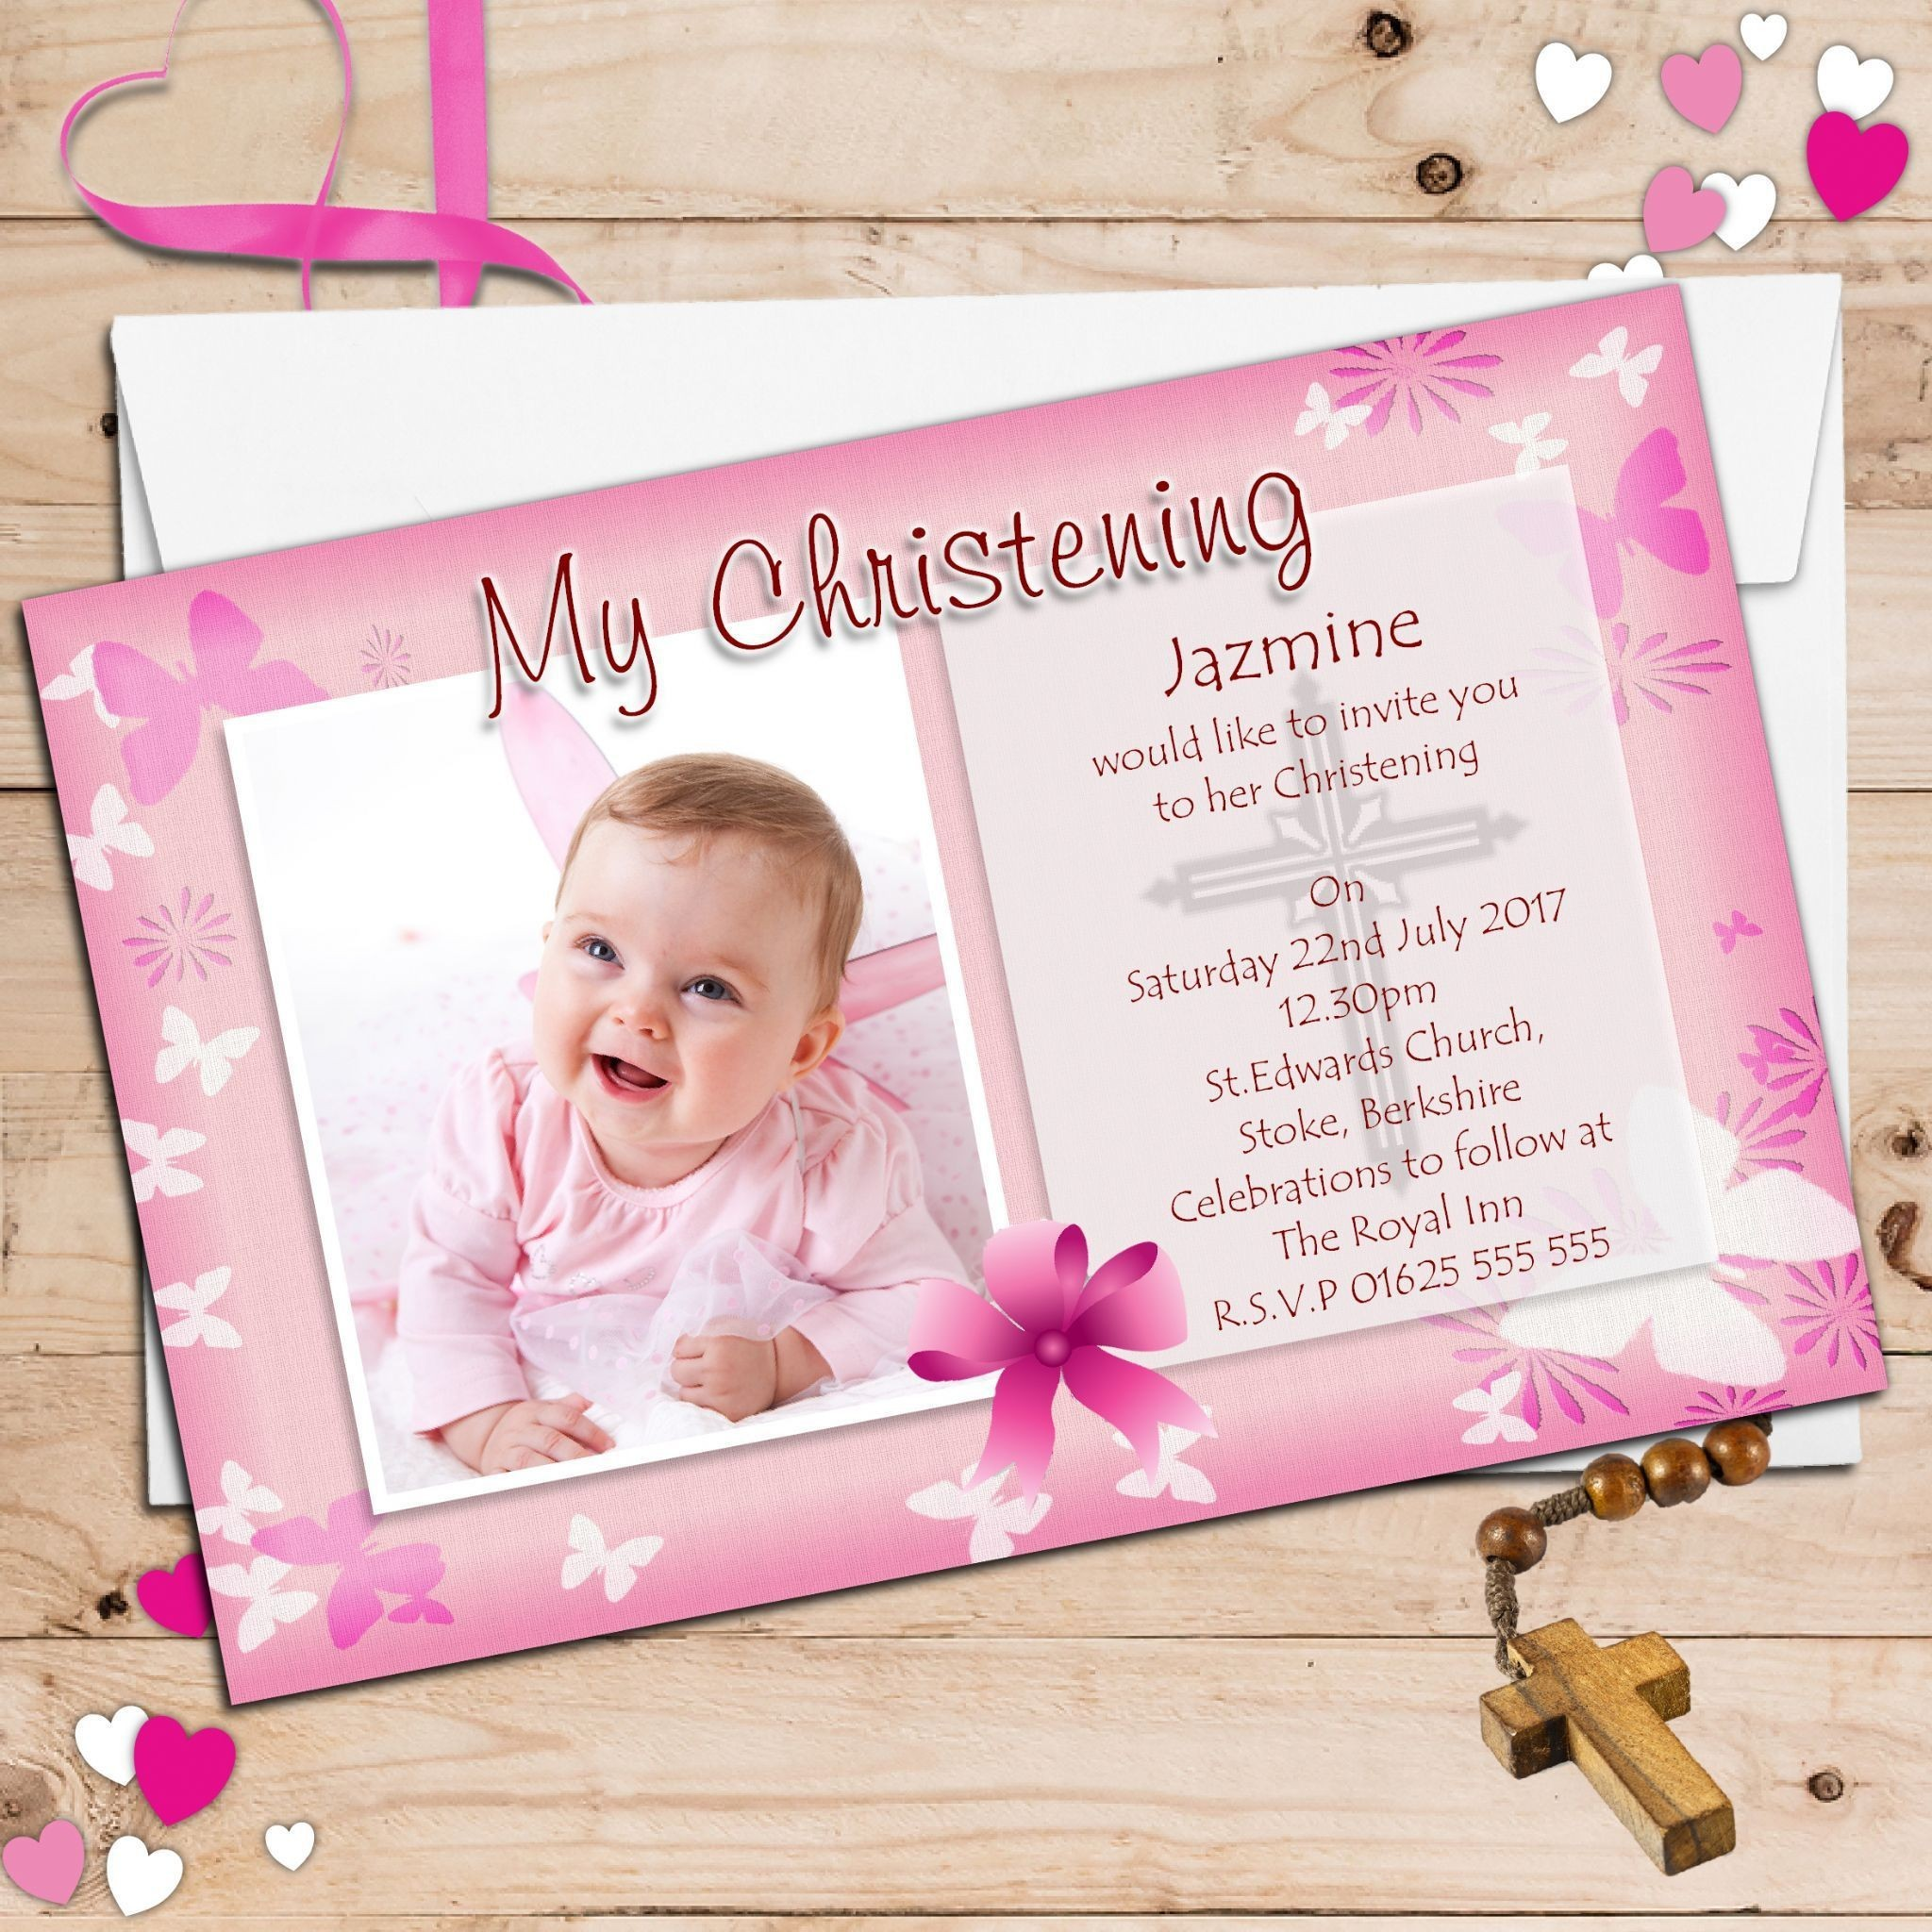 1st birthday and baptism combined invitation wording ; invitation-sample-christening-refrence-sample-invitation-for-1st-birthday-and-christening-new-1st-of-invitation-sample-christening